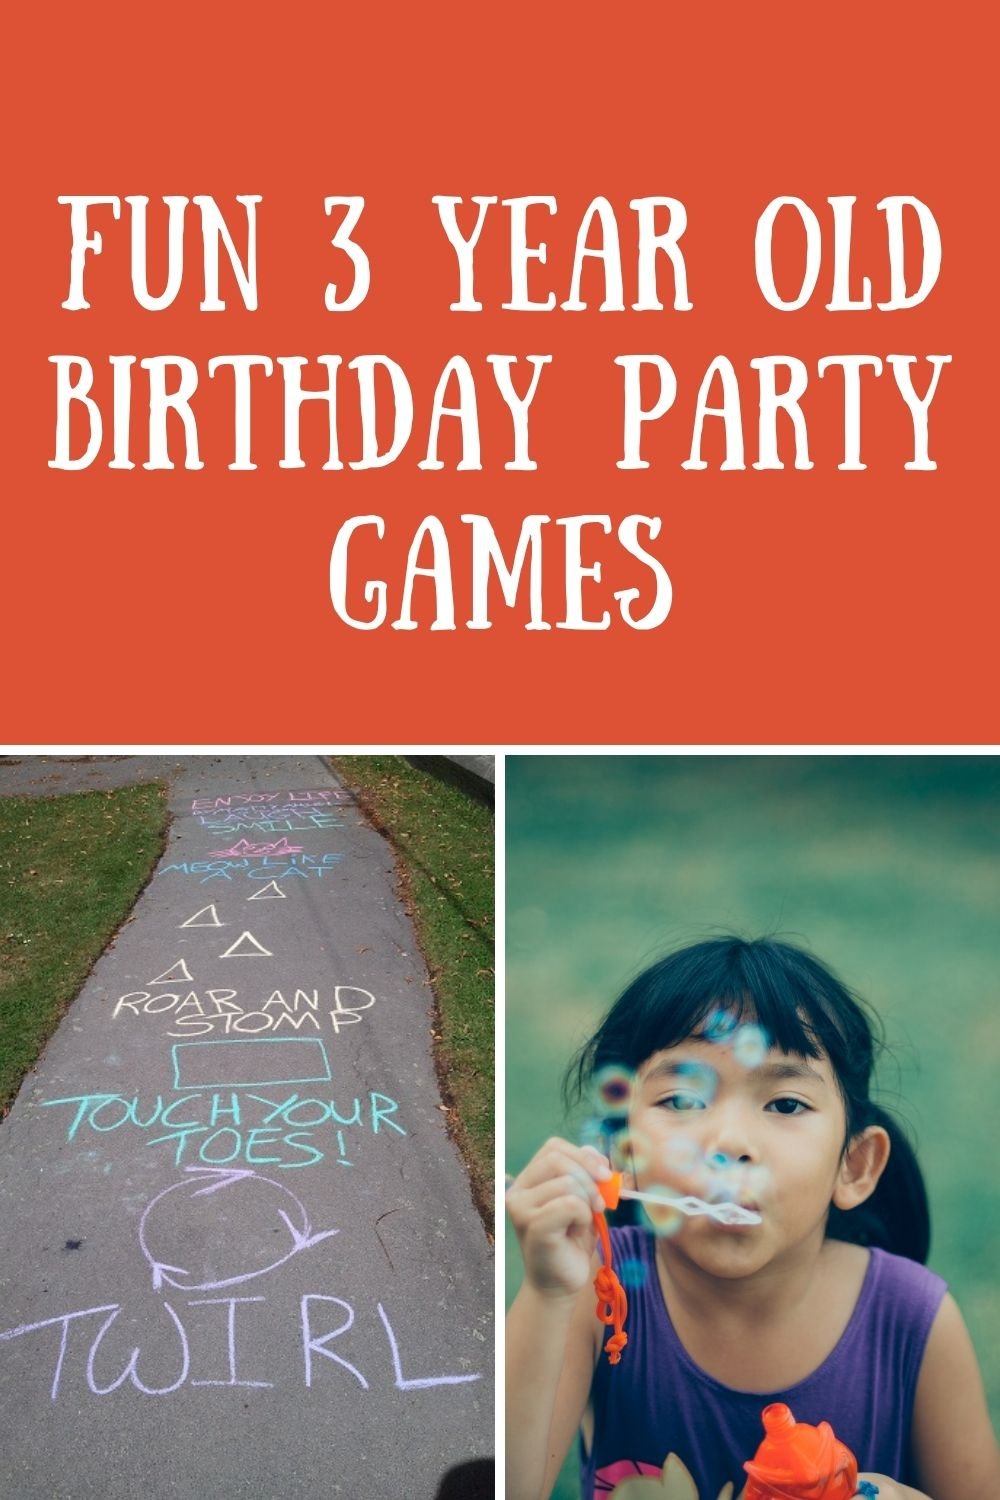 3 Year Old Birthday Party Games